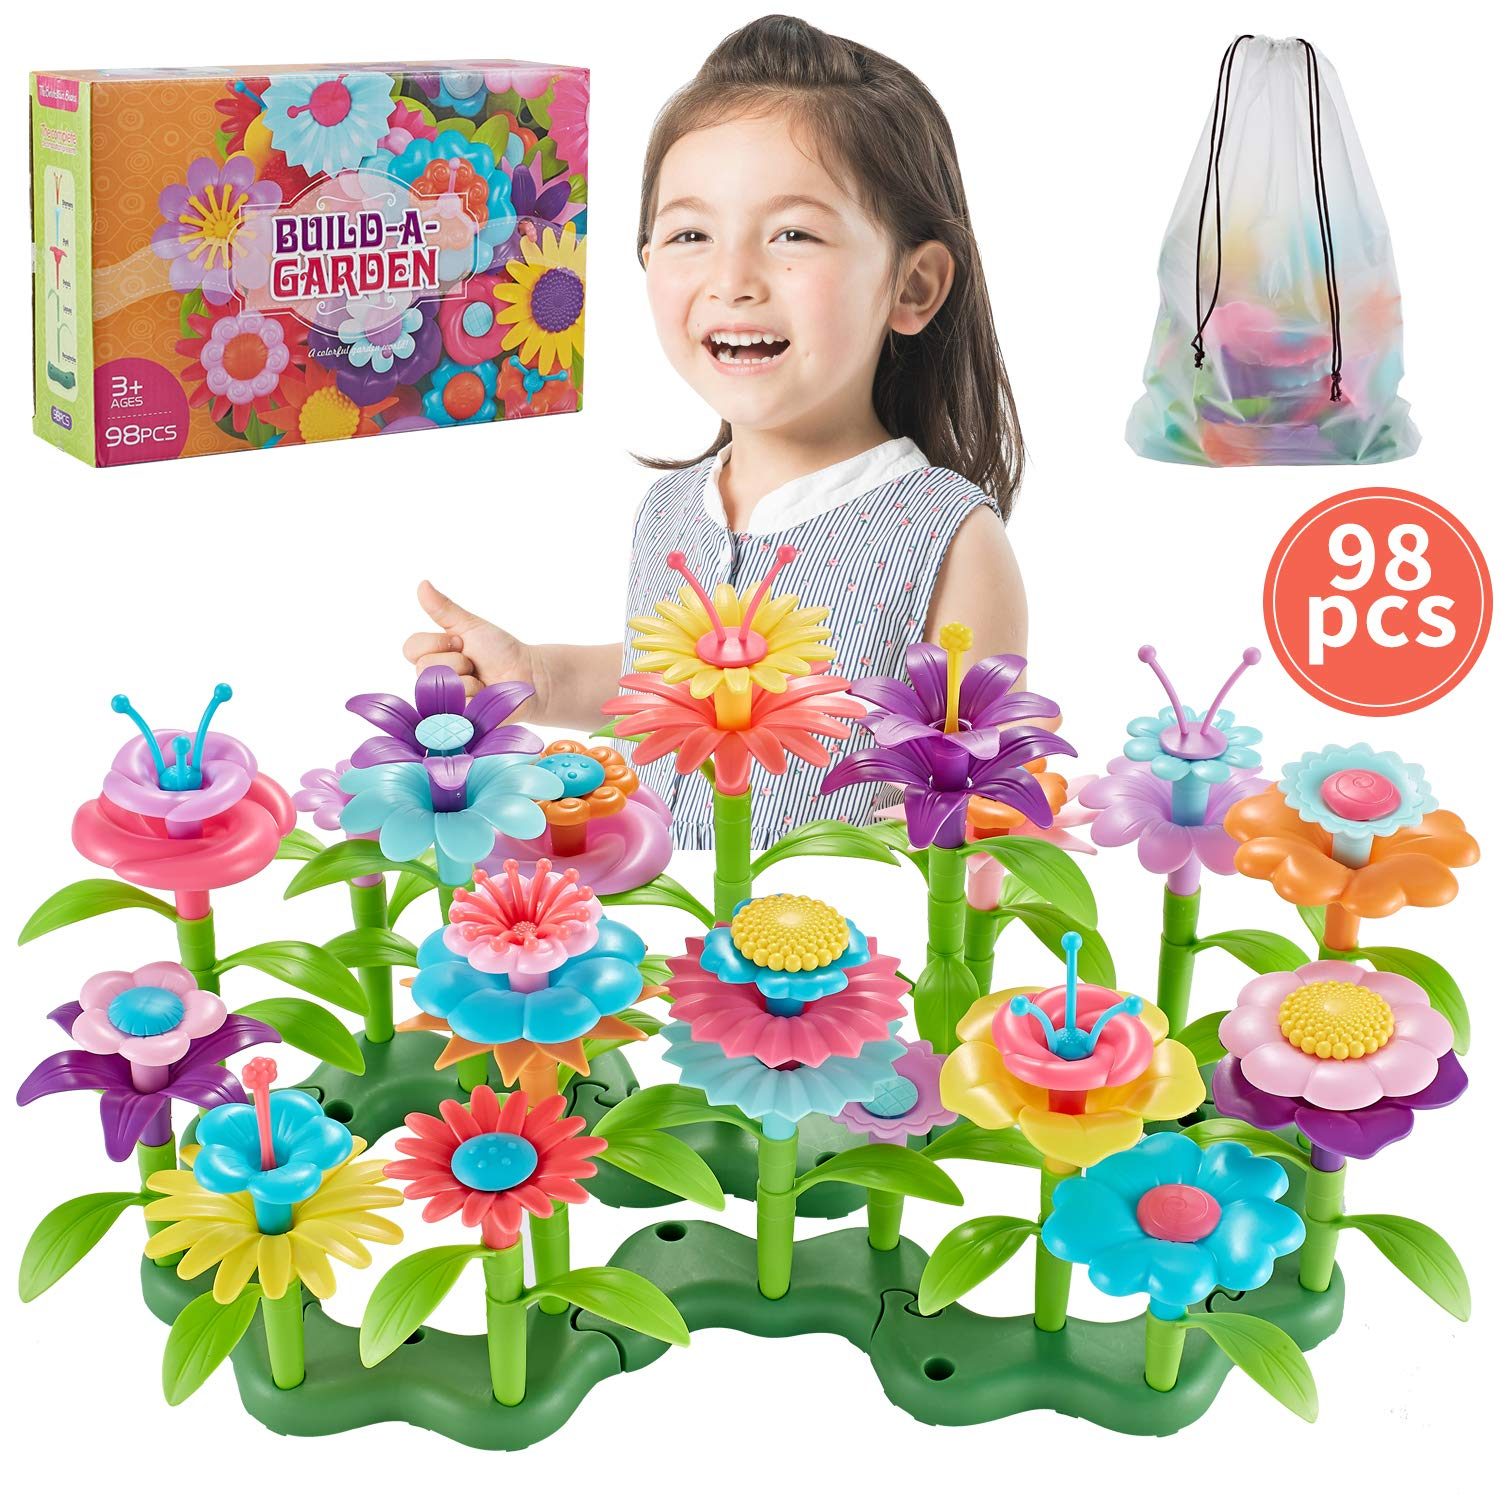 Bu-buildup Flower Building Toys, Garden Building Block, Pretend Gardening Toy, Creative Play Toy, 98 PCS Early Educational Toy, Build a Bouquet Floral Arrangement Playset for Kids Age 2, 3, 4, 5, 6, 7